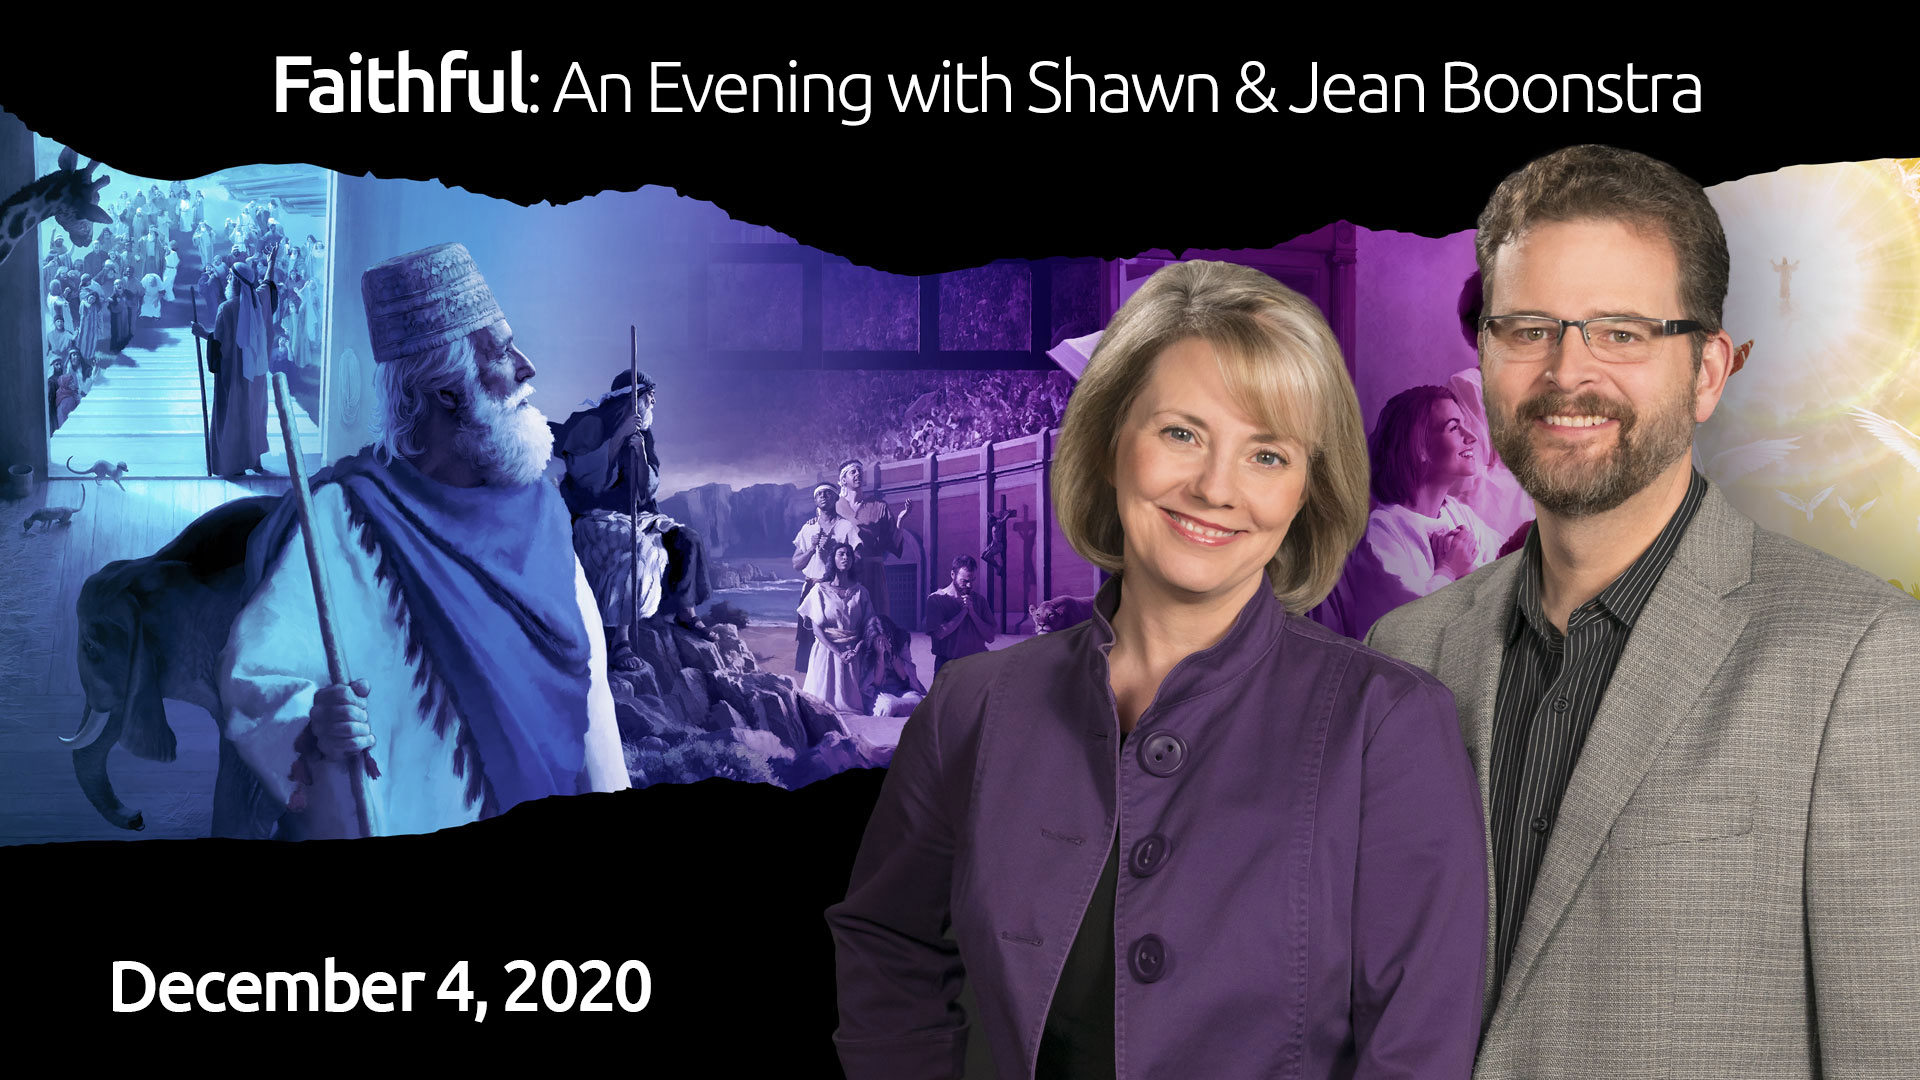 Faithful: An Evening with Shawn & Jean Boonstra